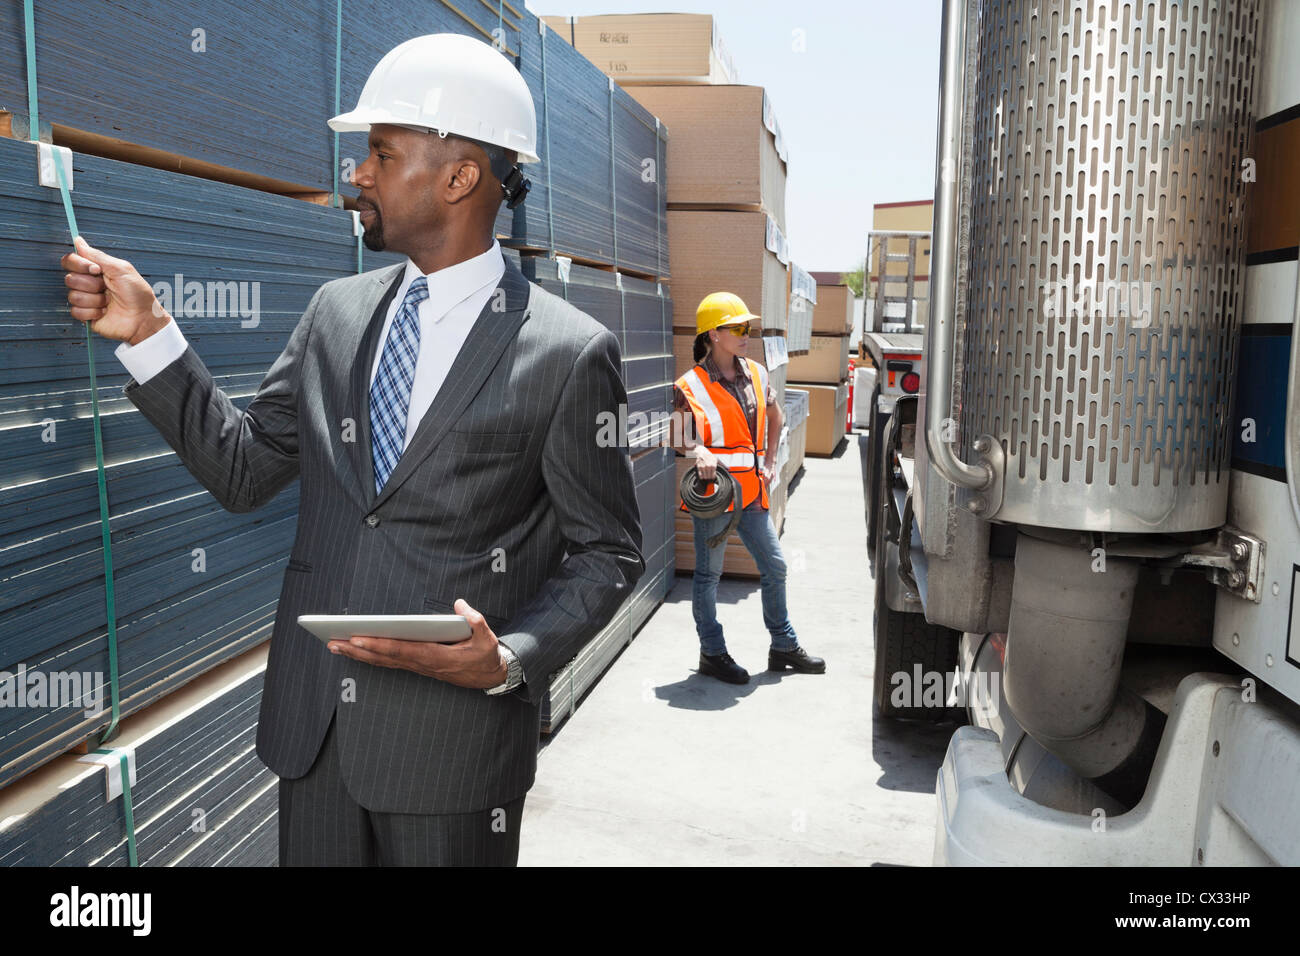 African American male engineer inspecting planks while female worker standing by flatbed truck - Stock Image